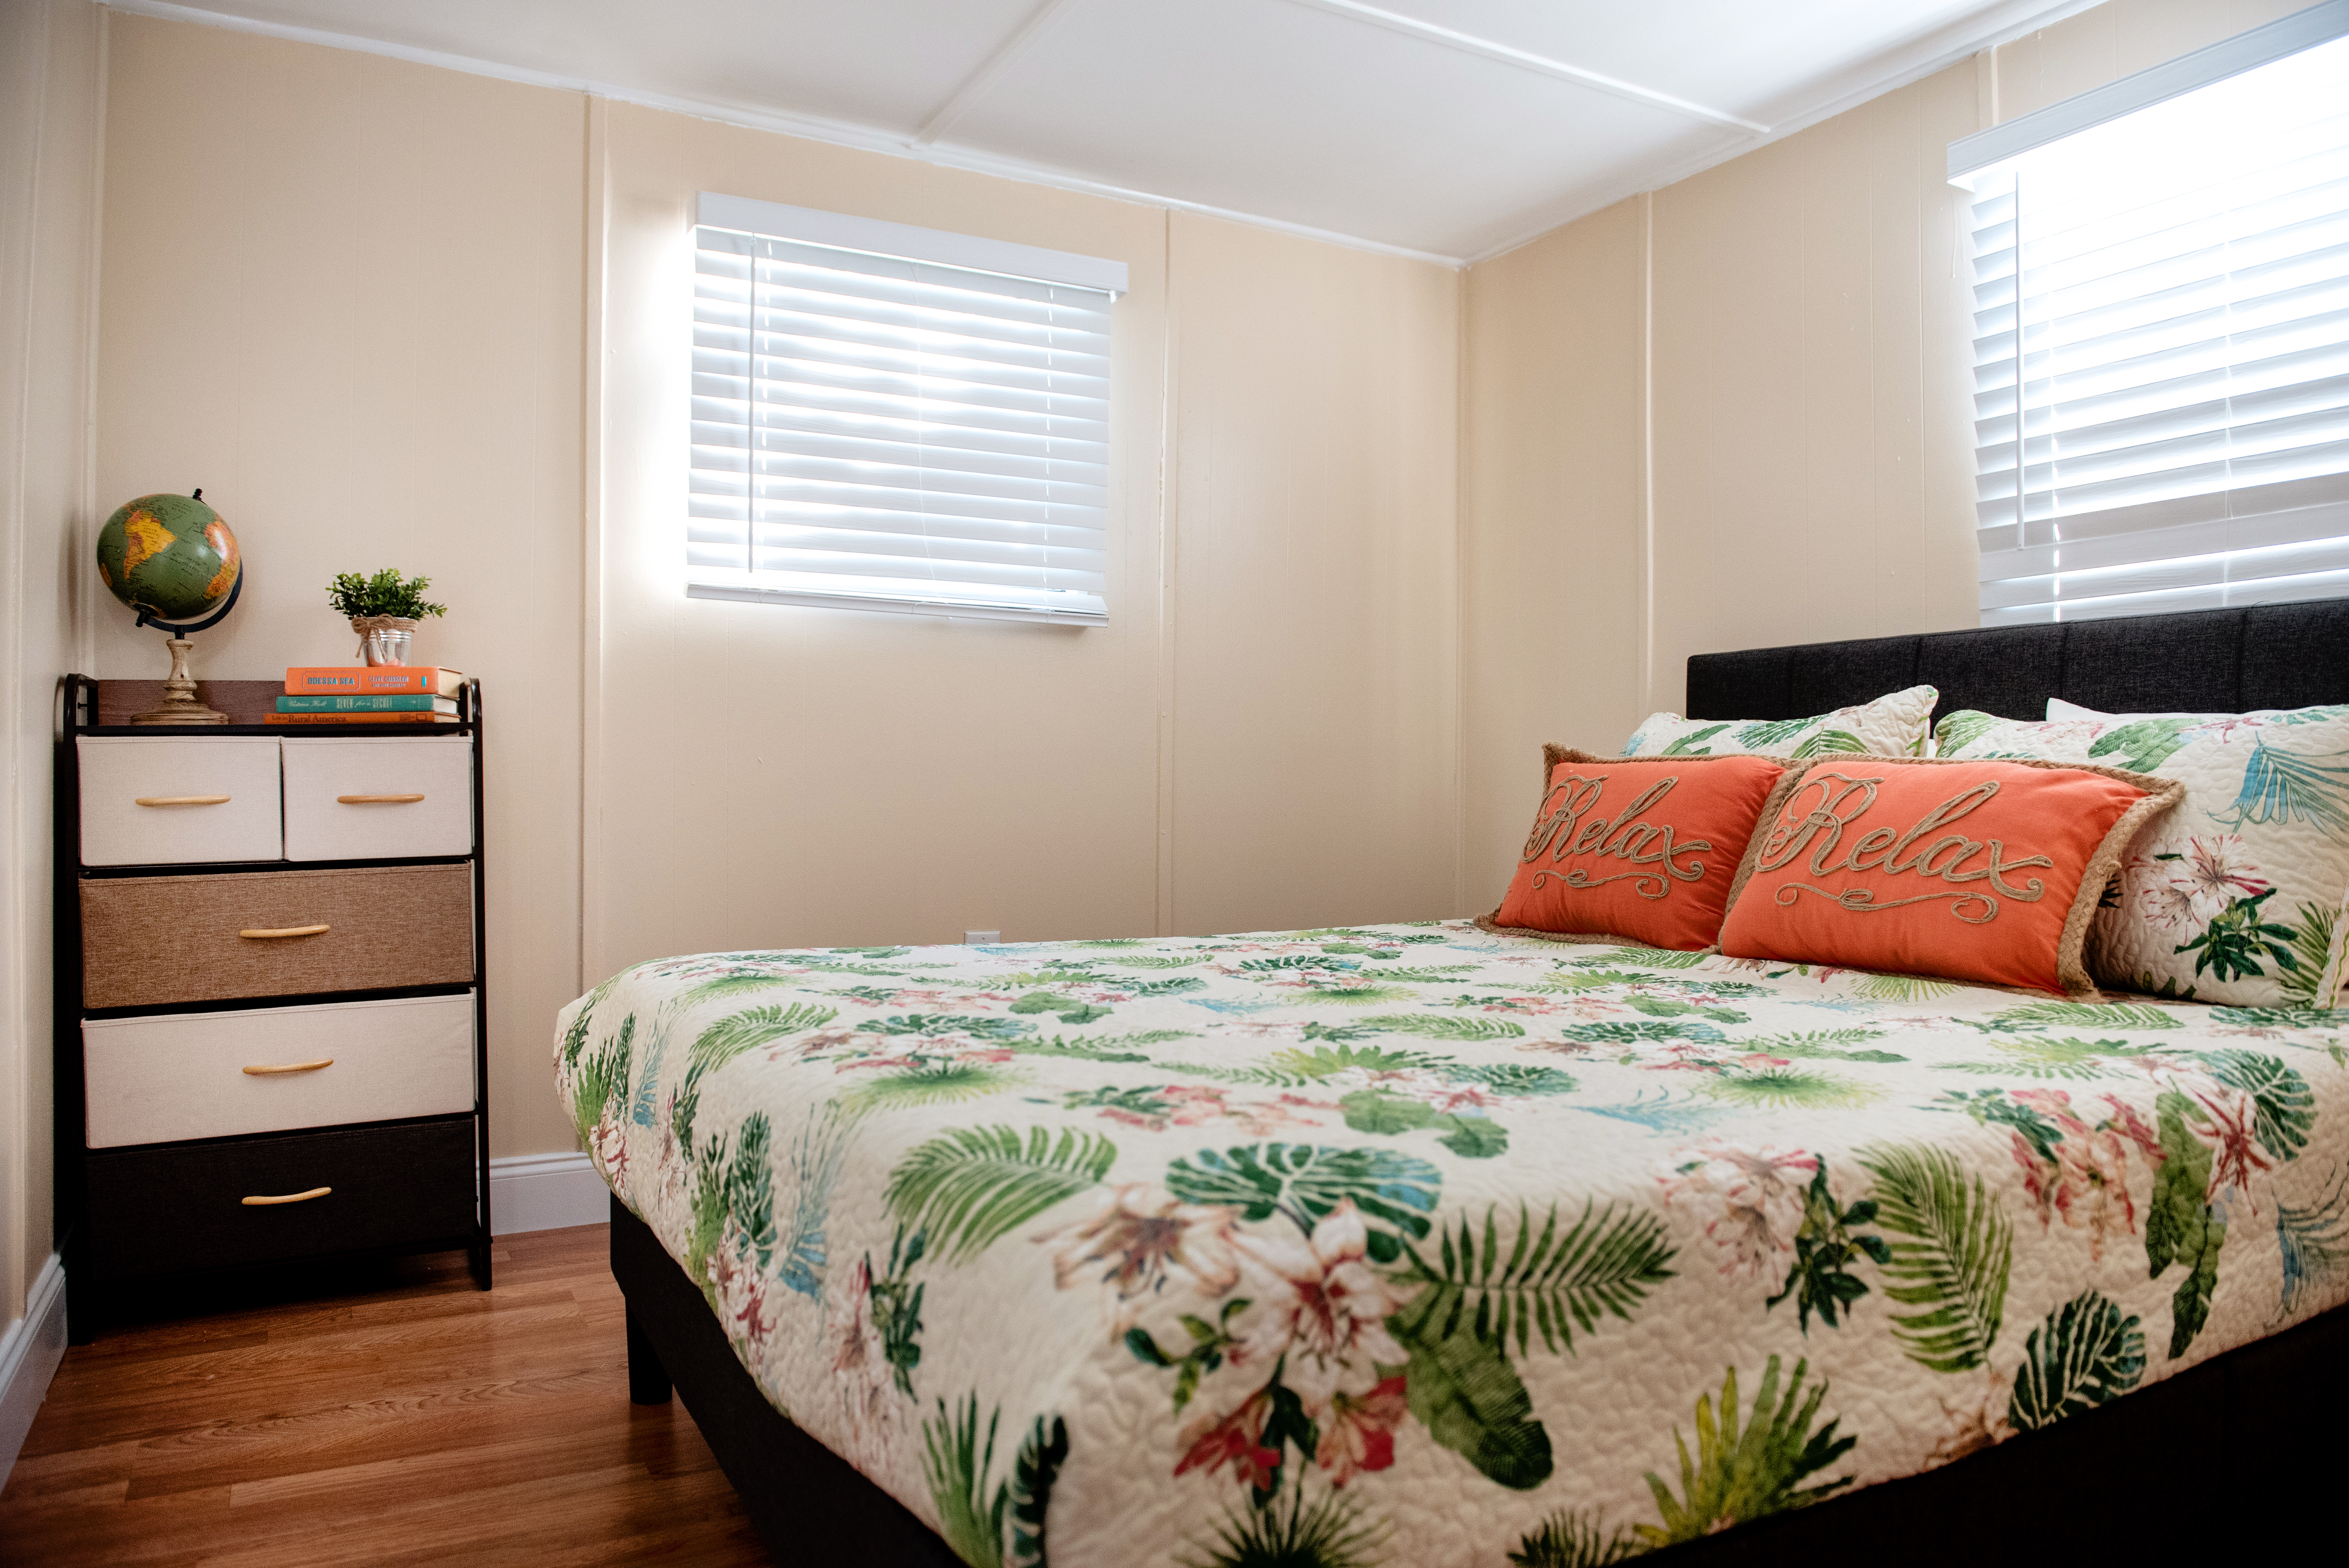 The queen size bedroom at the Mangrove Snapper unit.